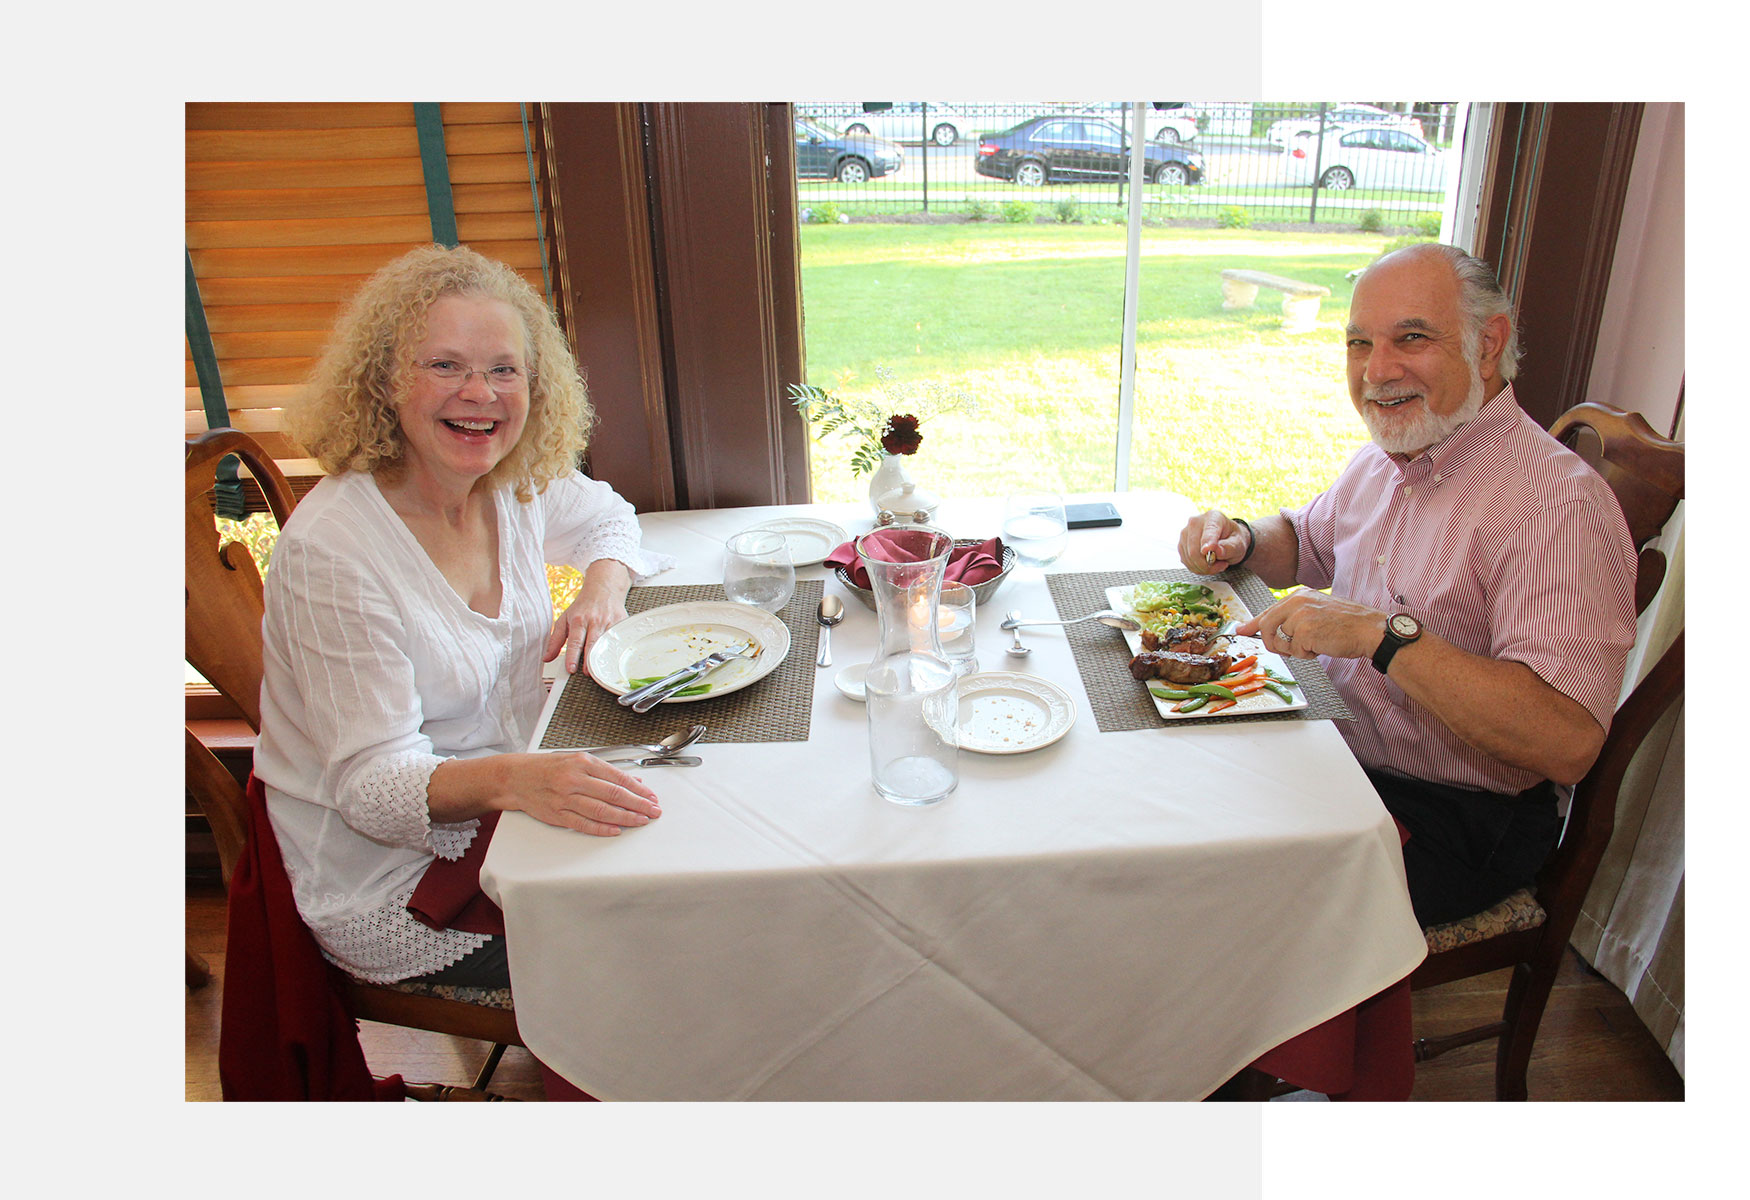 Two people sitting at dinner and smiling.